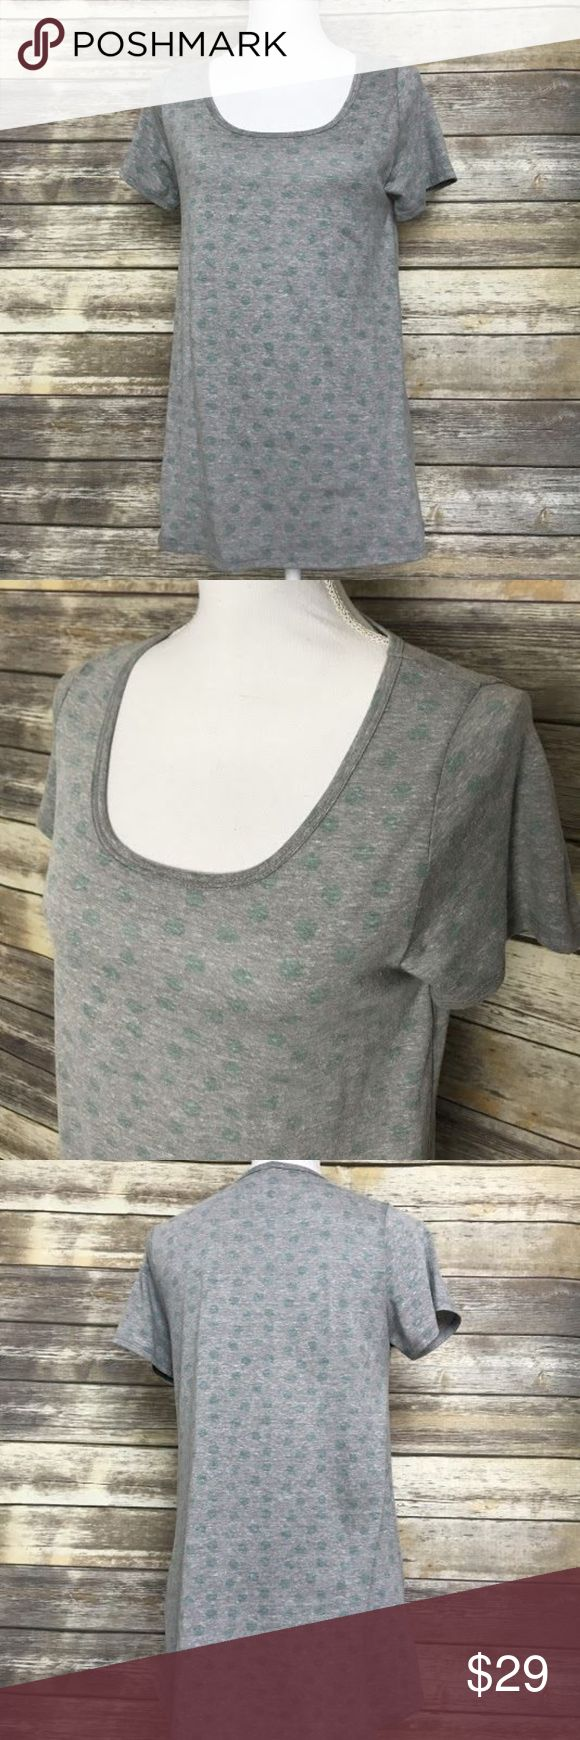 LULAROE Heather Gray Polka Dot Shirt Size Small S LULAROE Women's Heather Gray w/ Green Polka Dots Short Sleeve Shirt Size Small S  Great Condition. Item has been cleaned and is stored in a smoke free environment.   50% Polyester, 38% Cotton, 12% Rayon. No holes or stains.  Approximate Measurements: Bust (Pit to pit): 18 inches Length of garment: 29 1/2 inches LuLaRoe Tops Tees - Short Sleeve